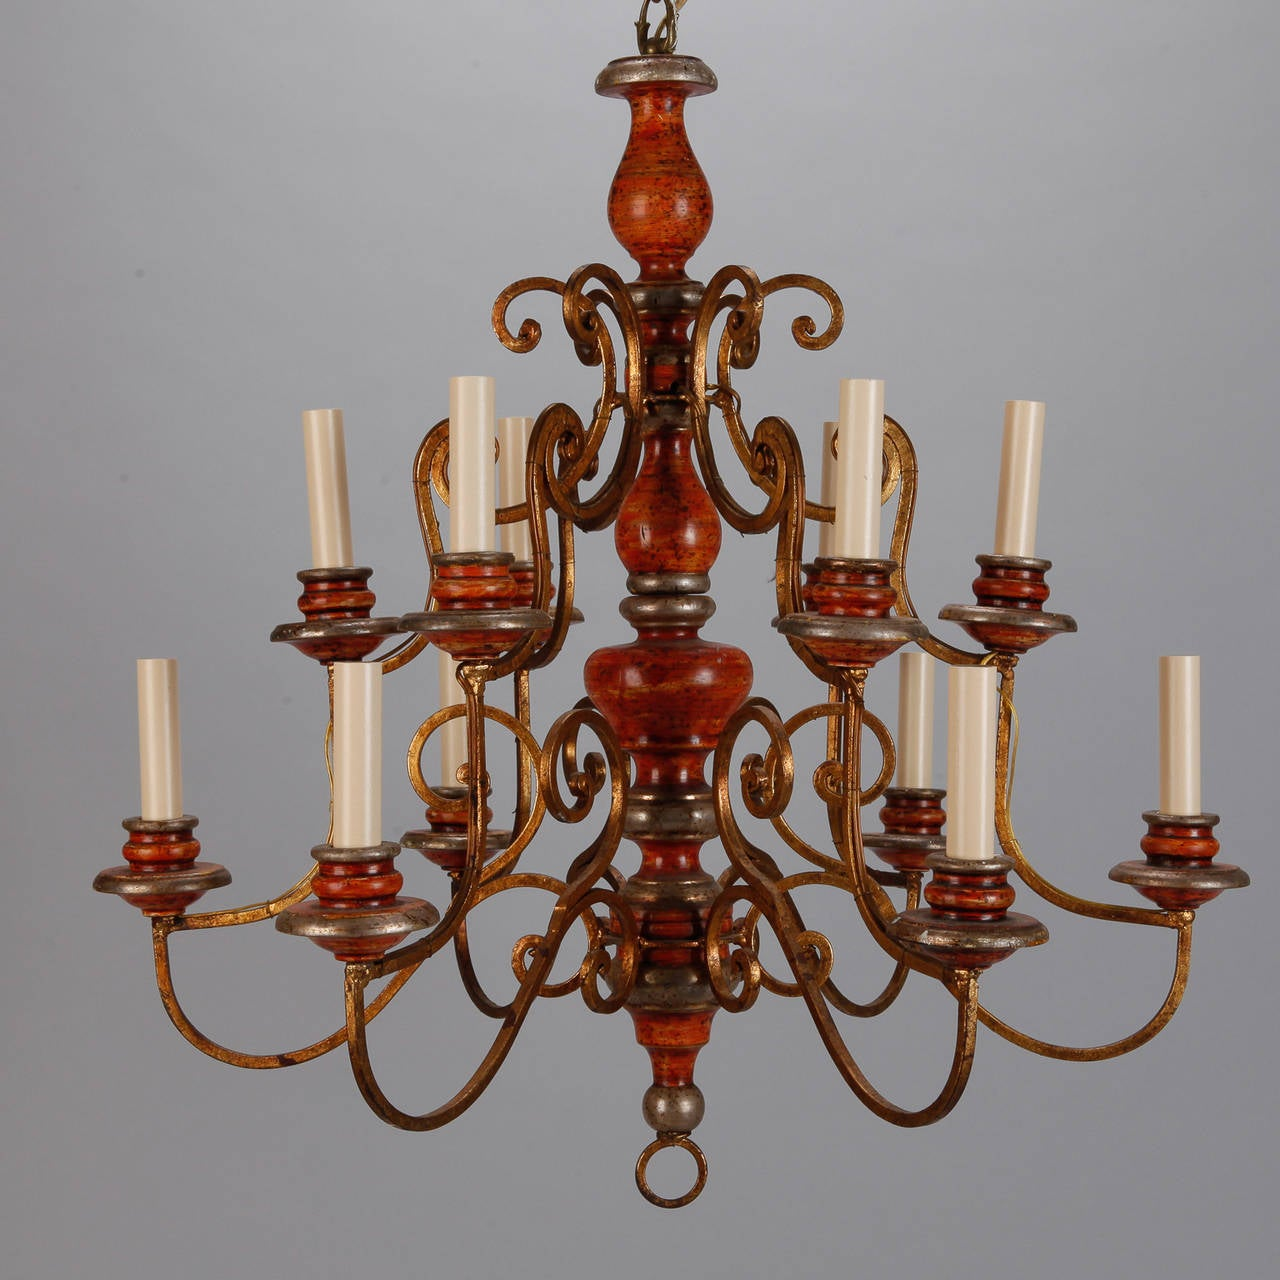 Circa 1930s twelve light chandelier from Italy with turned and wood center shaft in red painted finish, gilded iron arms and supports and wood bobeches. New electrical wiring for US standards.